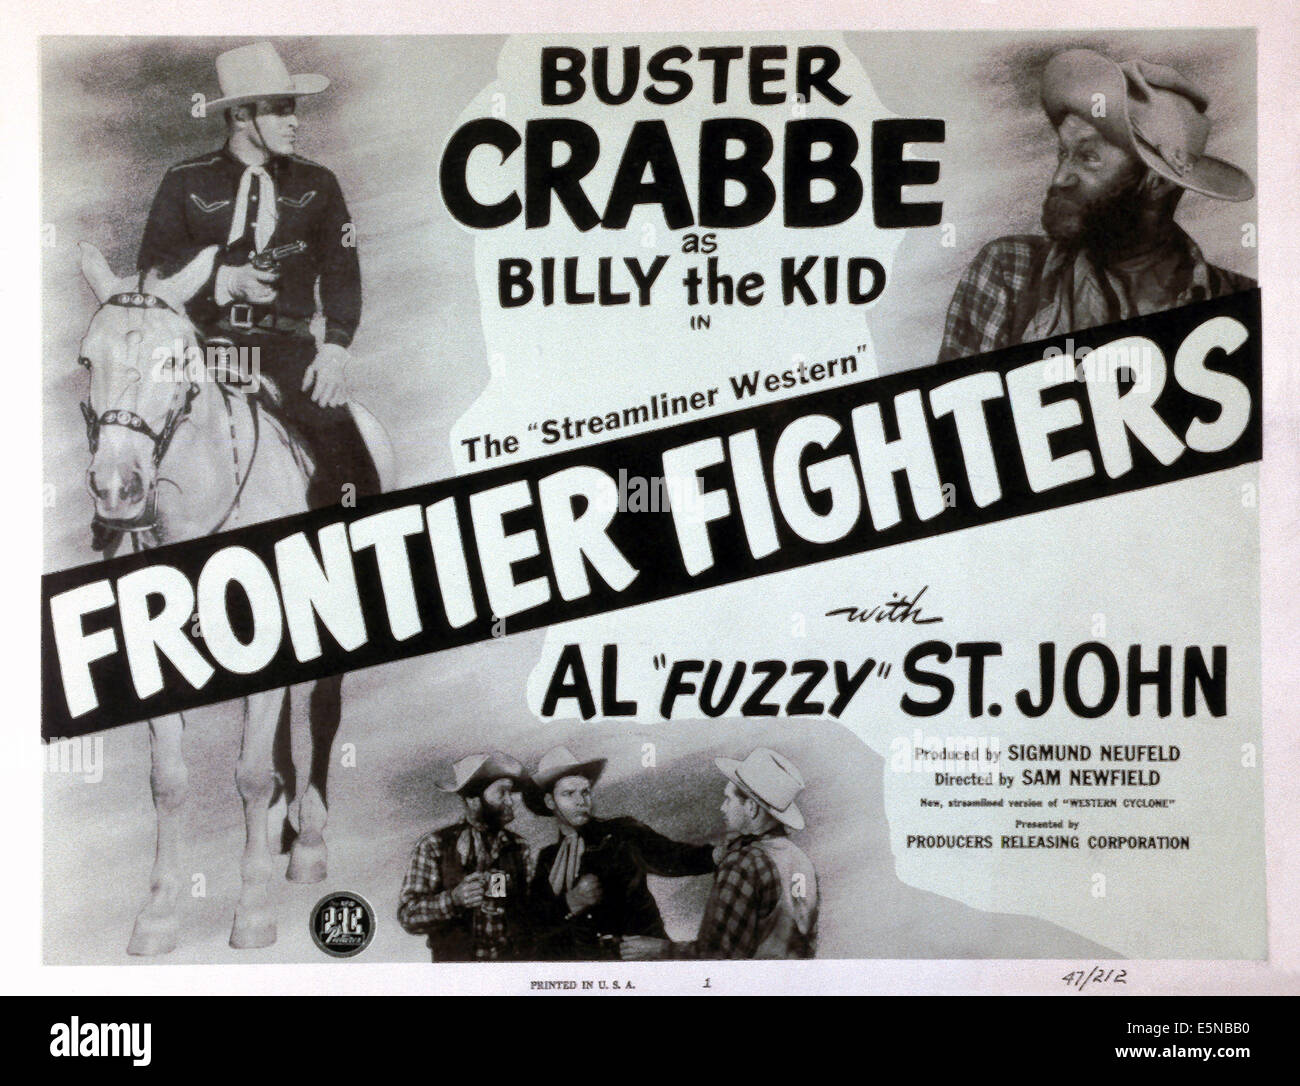 FRONTIER FIGHTERS, (aka WESTERN CYCLONE), Buster Crabbe (left), Al St. John (right), 1943 - Stock Image